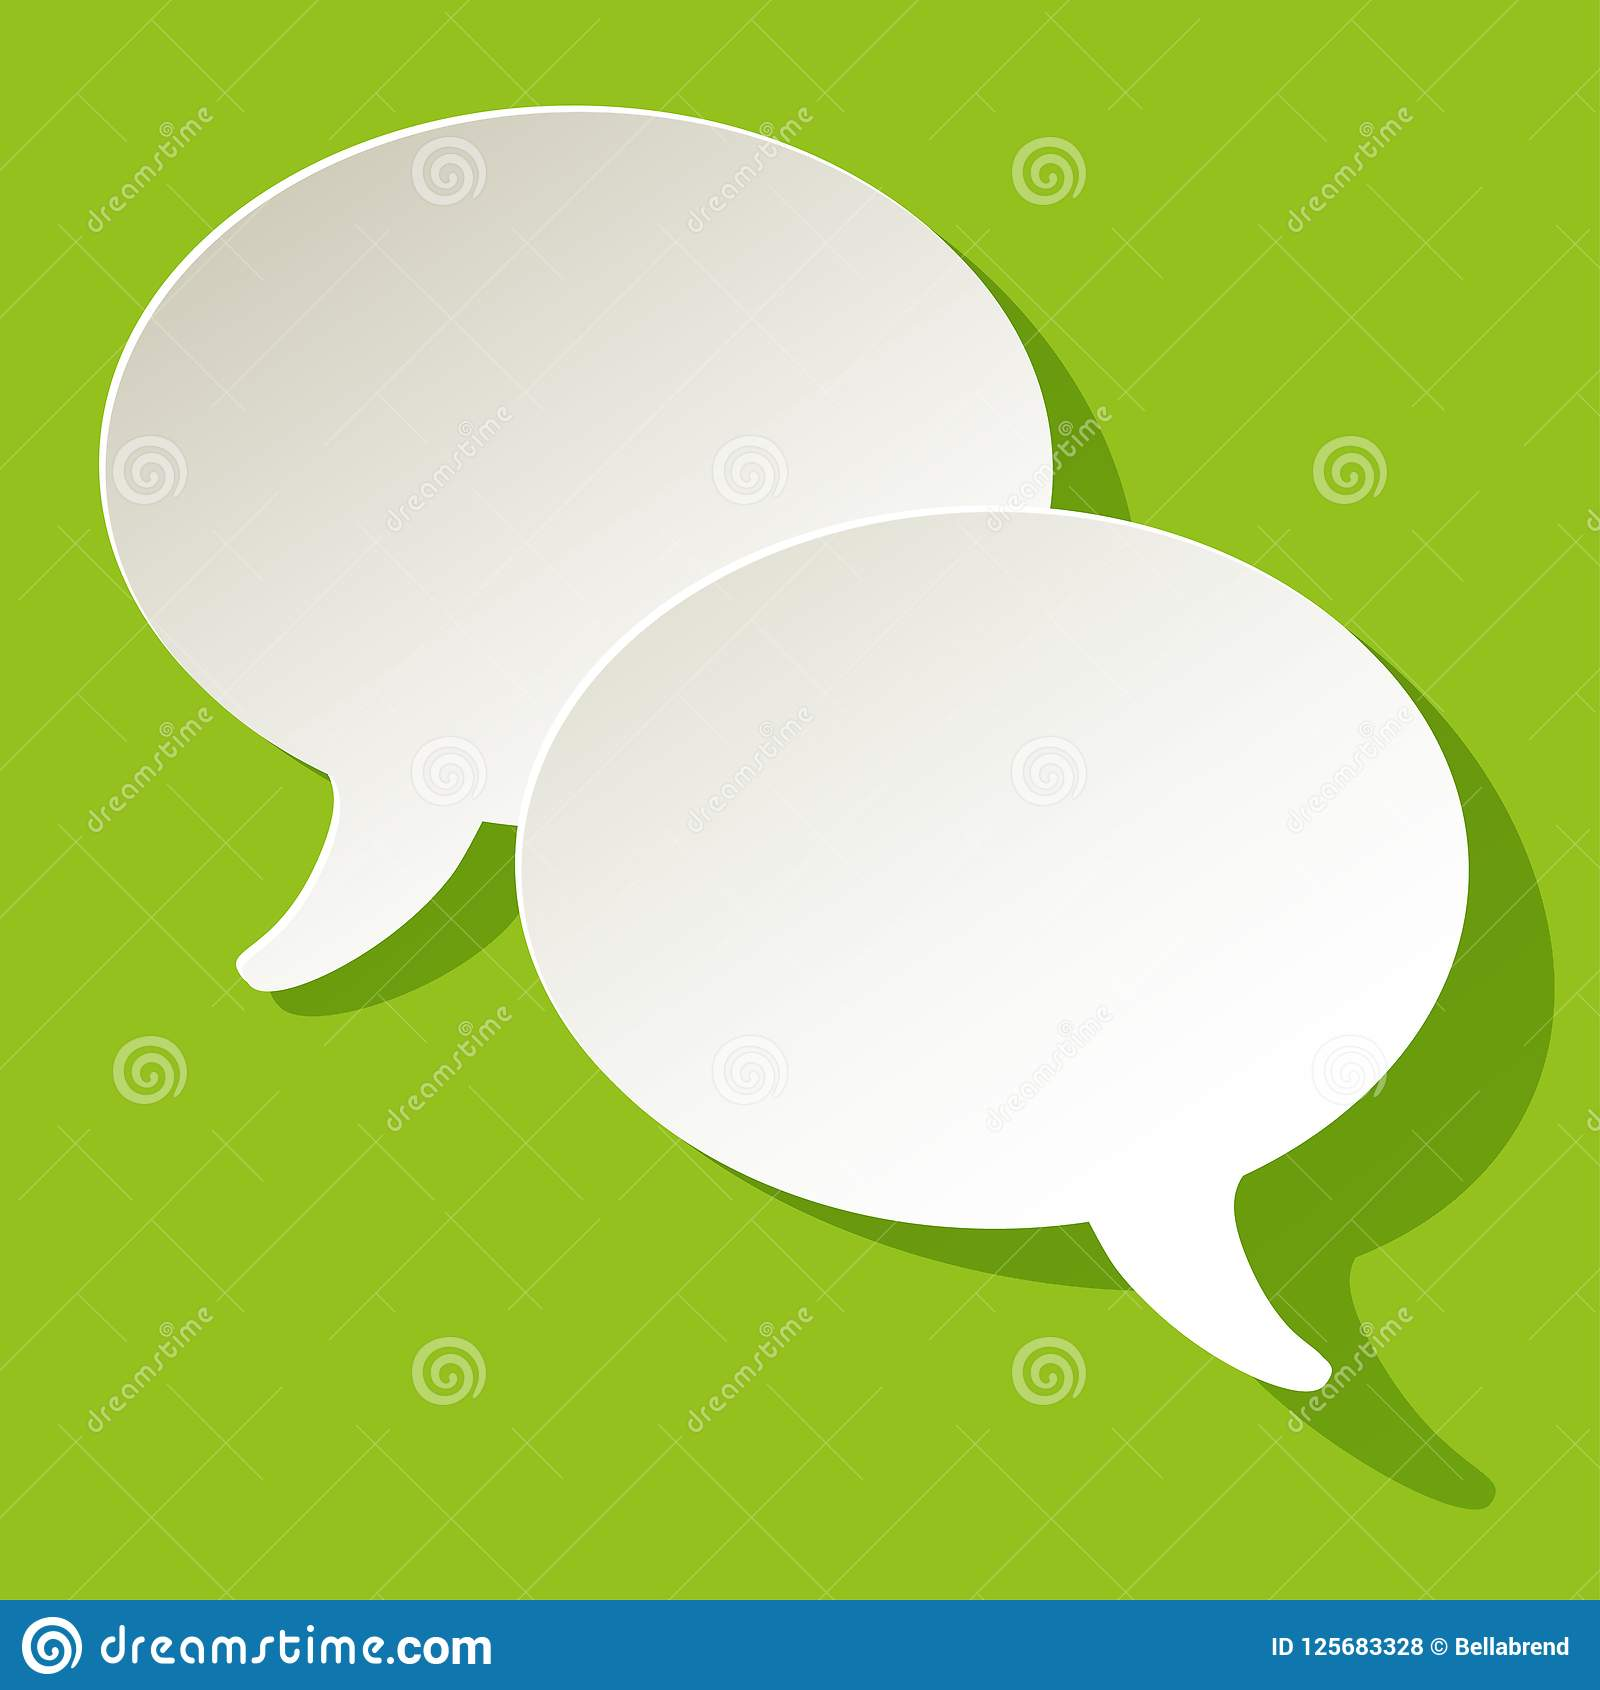 Chat speech bubbles ellipse vector white on a green paper background.